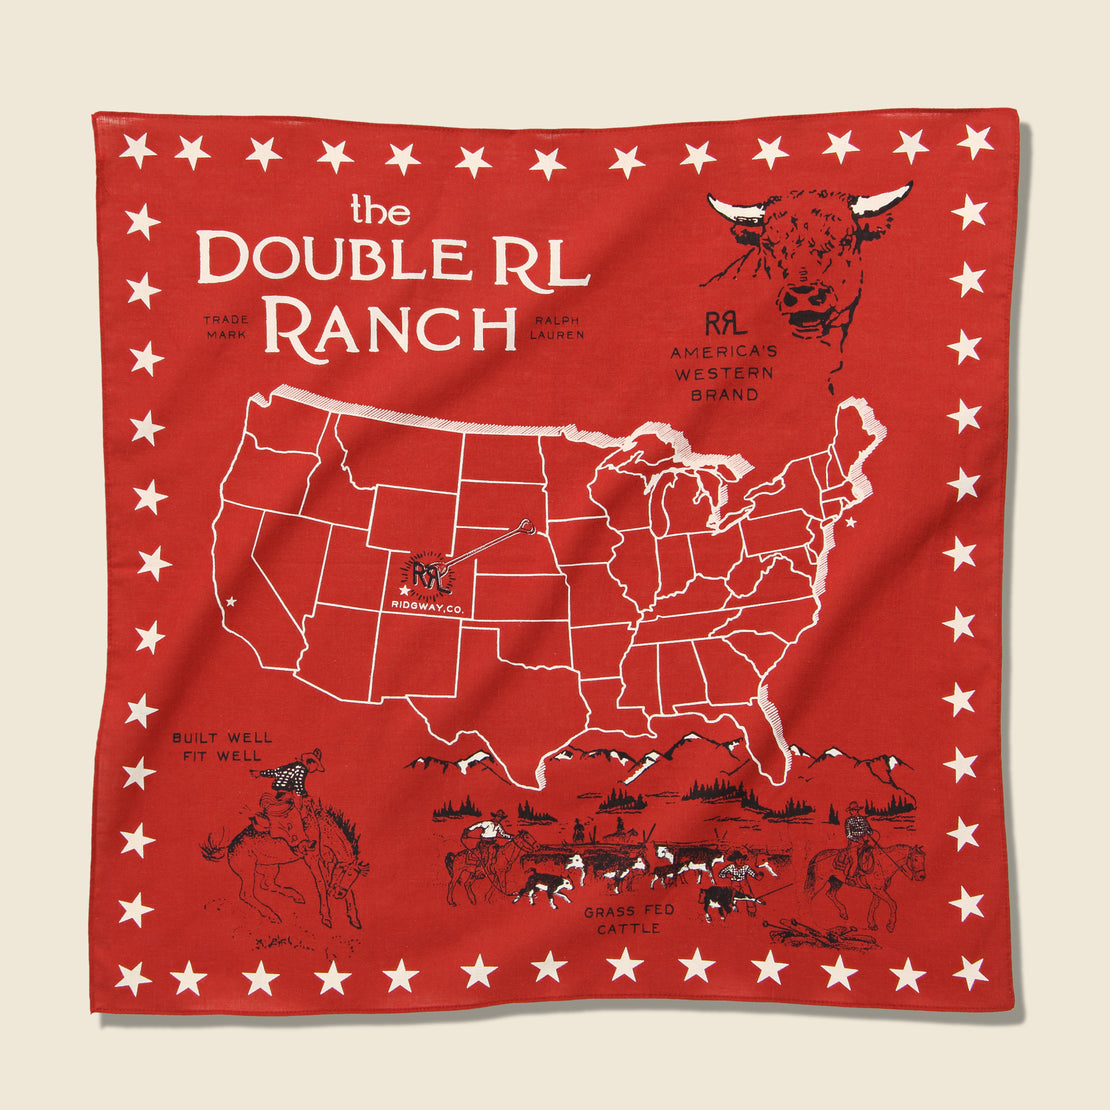 RRL Ridgeway Souvenir Bandana - Turkey Red/Griege/Black